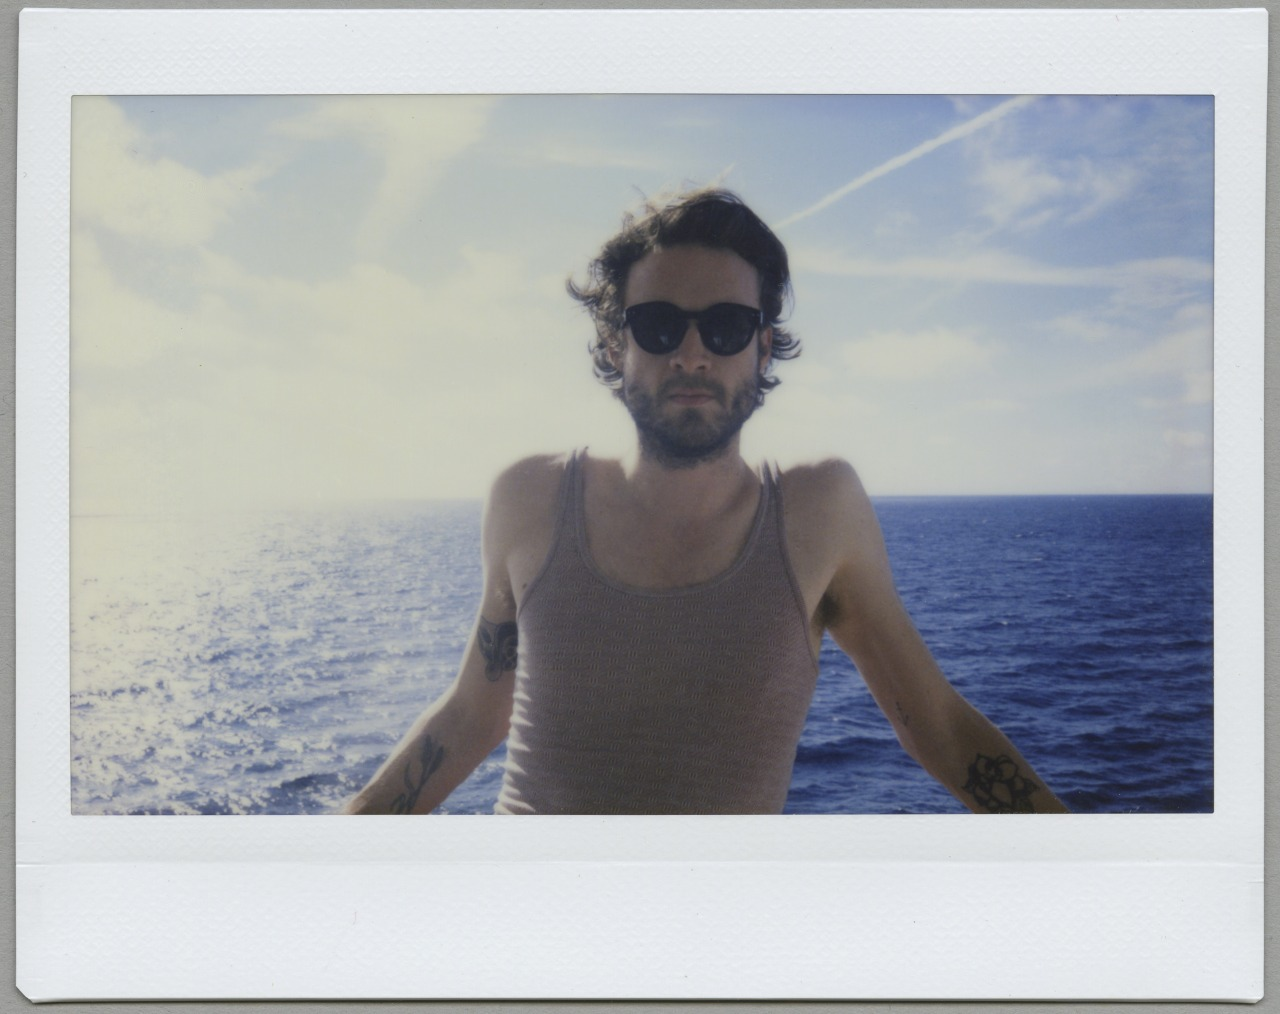 Josh  Off the coast of The Bahamas Photo by Emma Elizabeth Garr